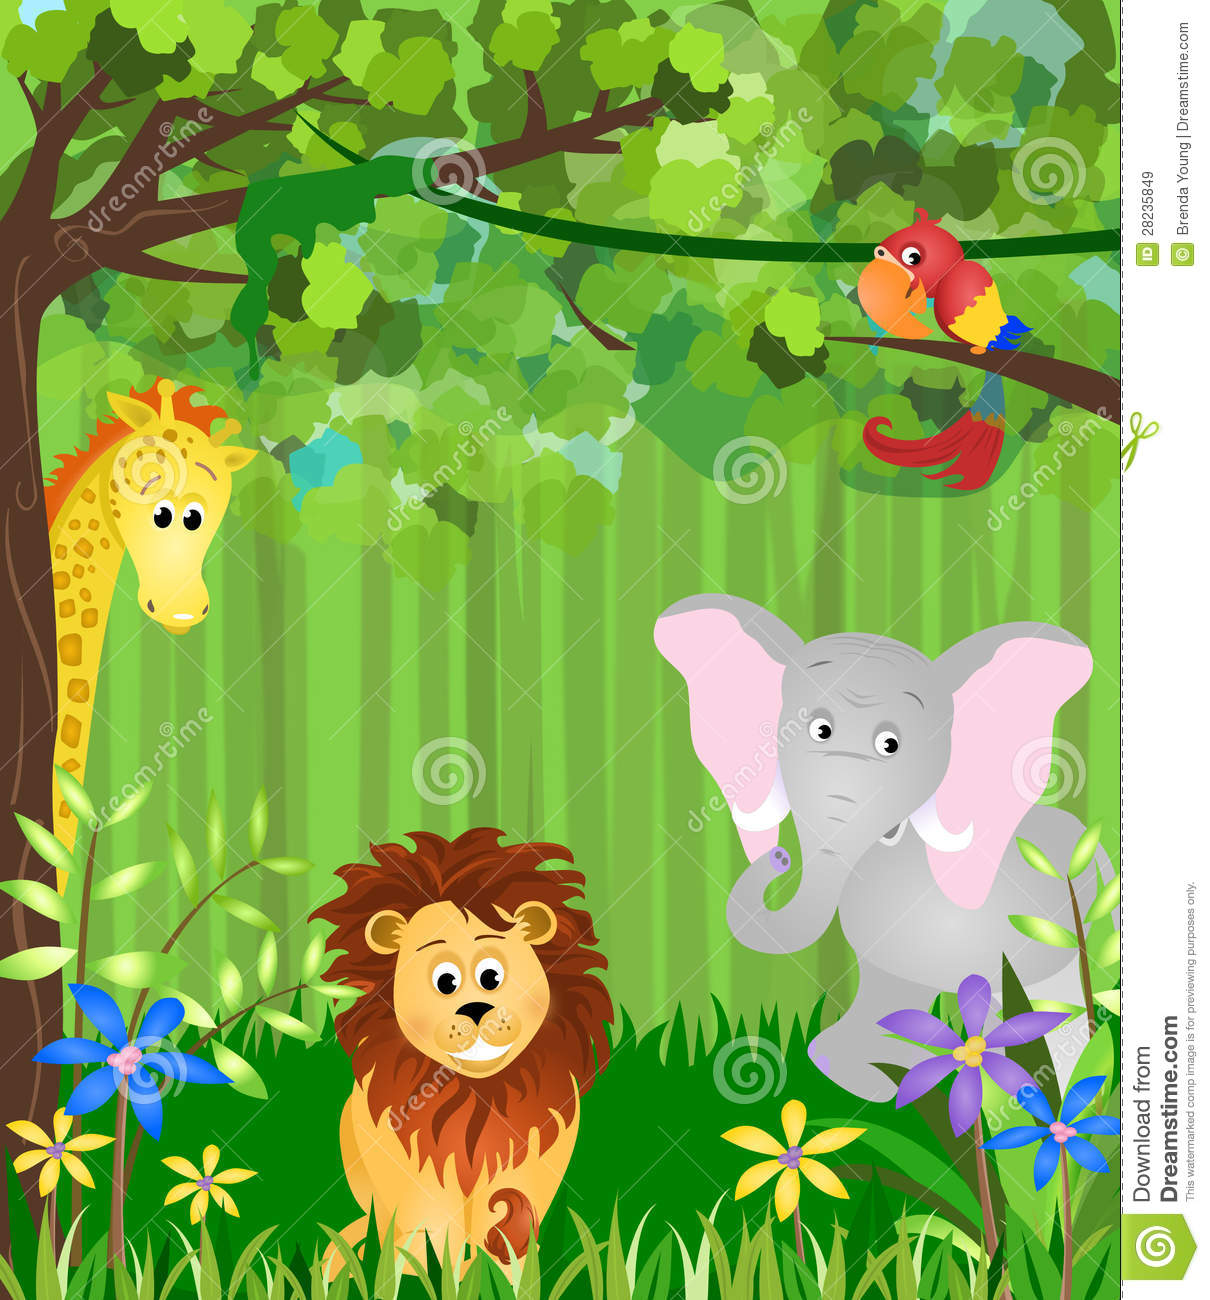 Jungle Animals Royalty Free Stock Images - Image: 28235849